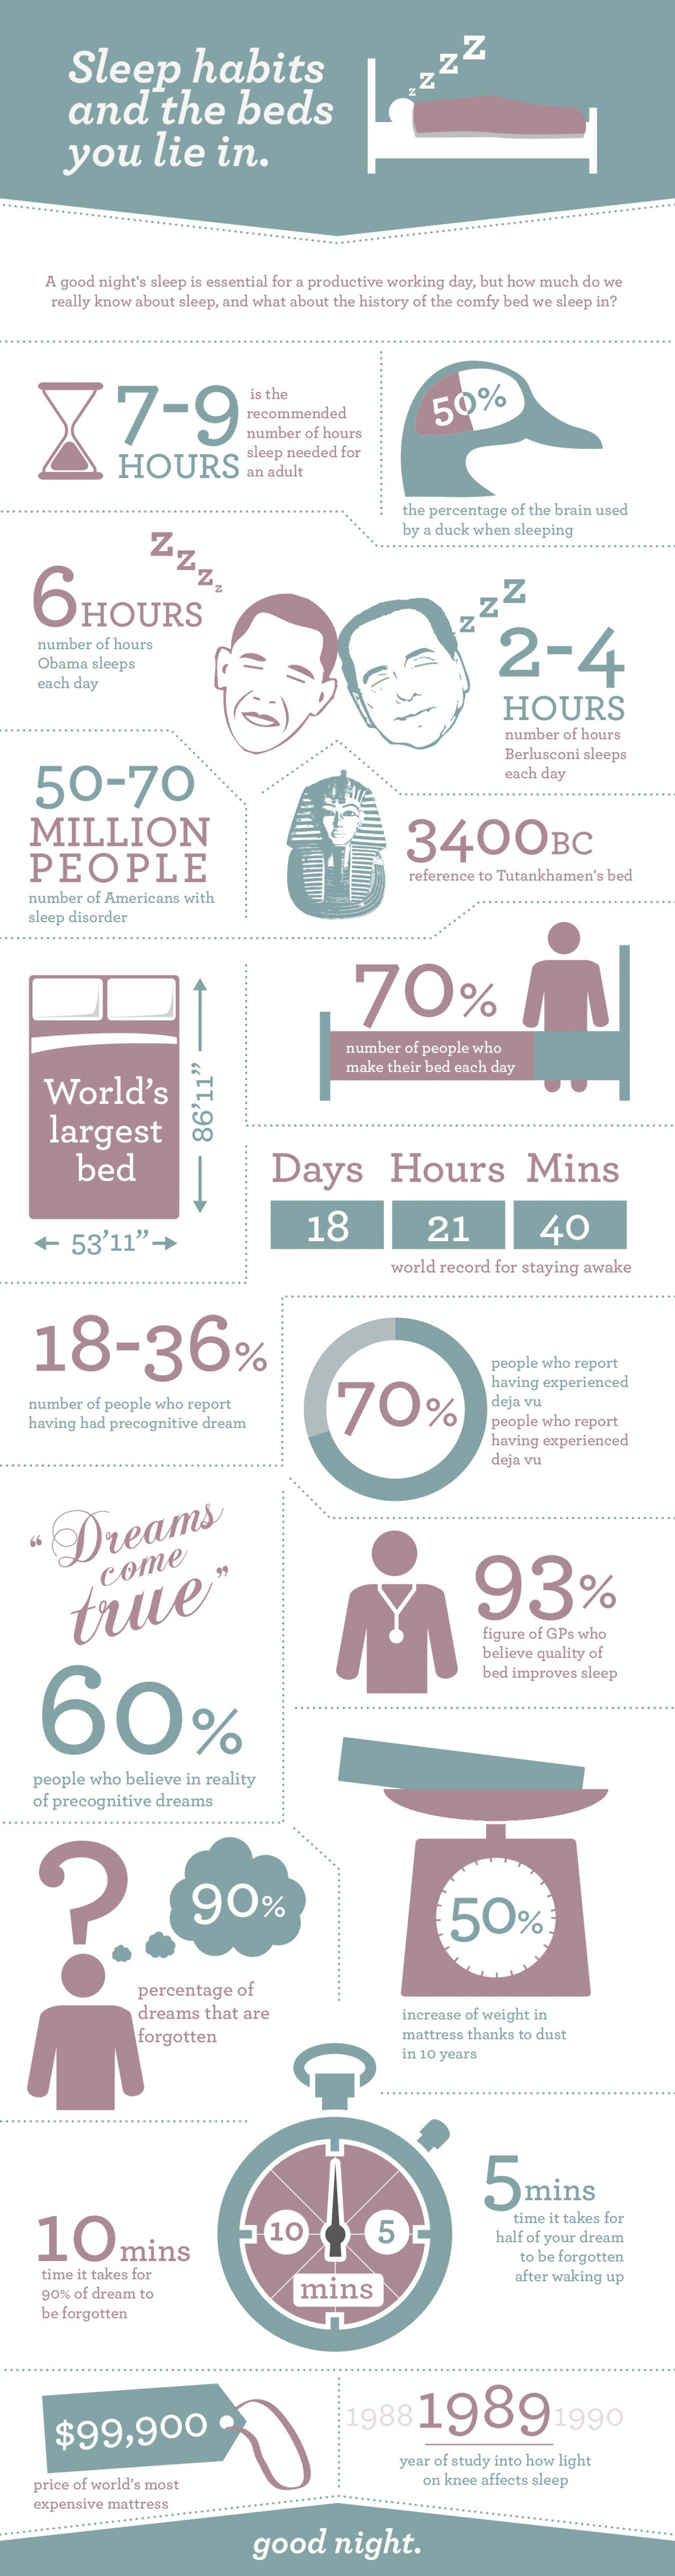 Facts About Sleep! Infographic